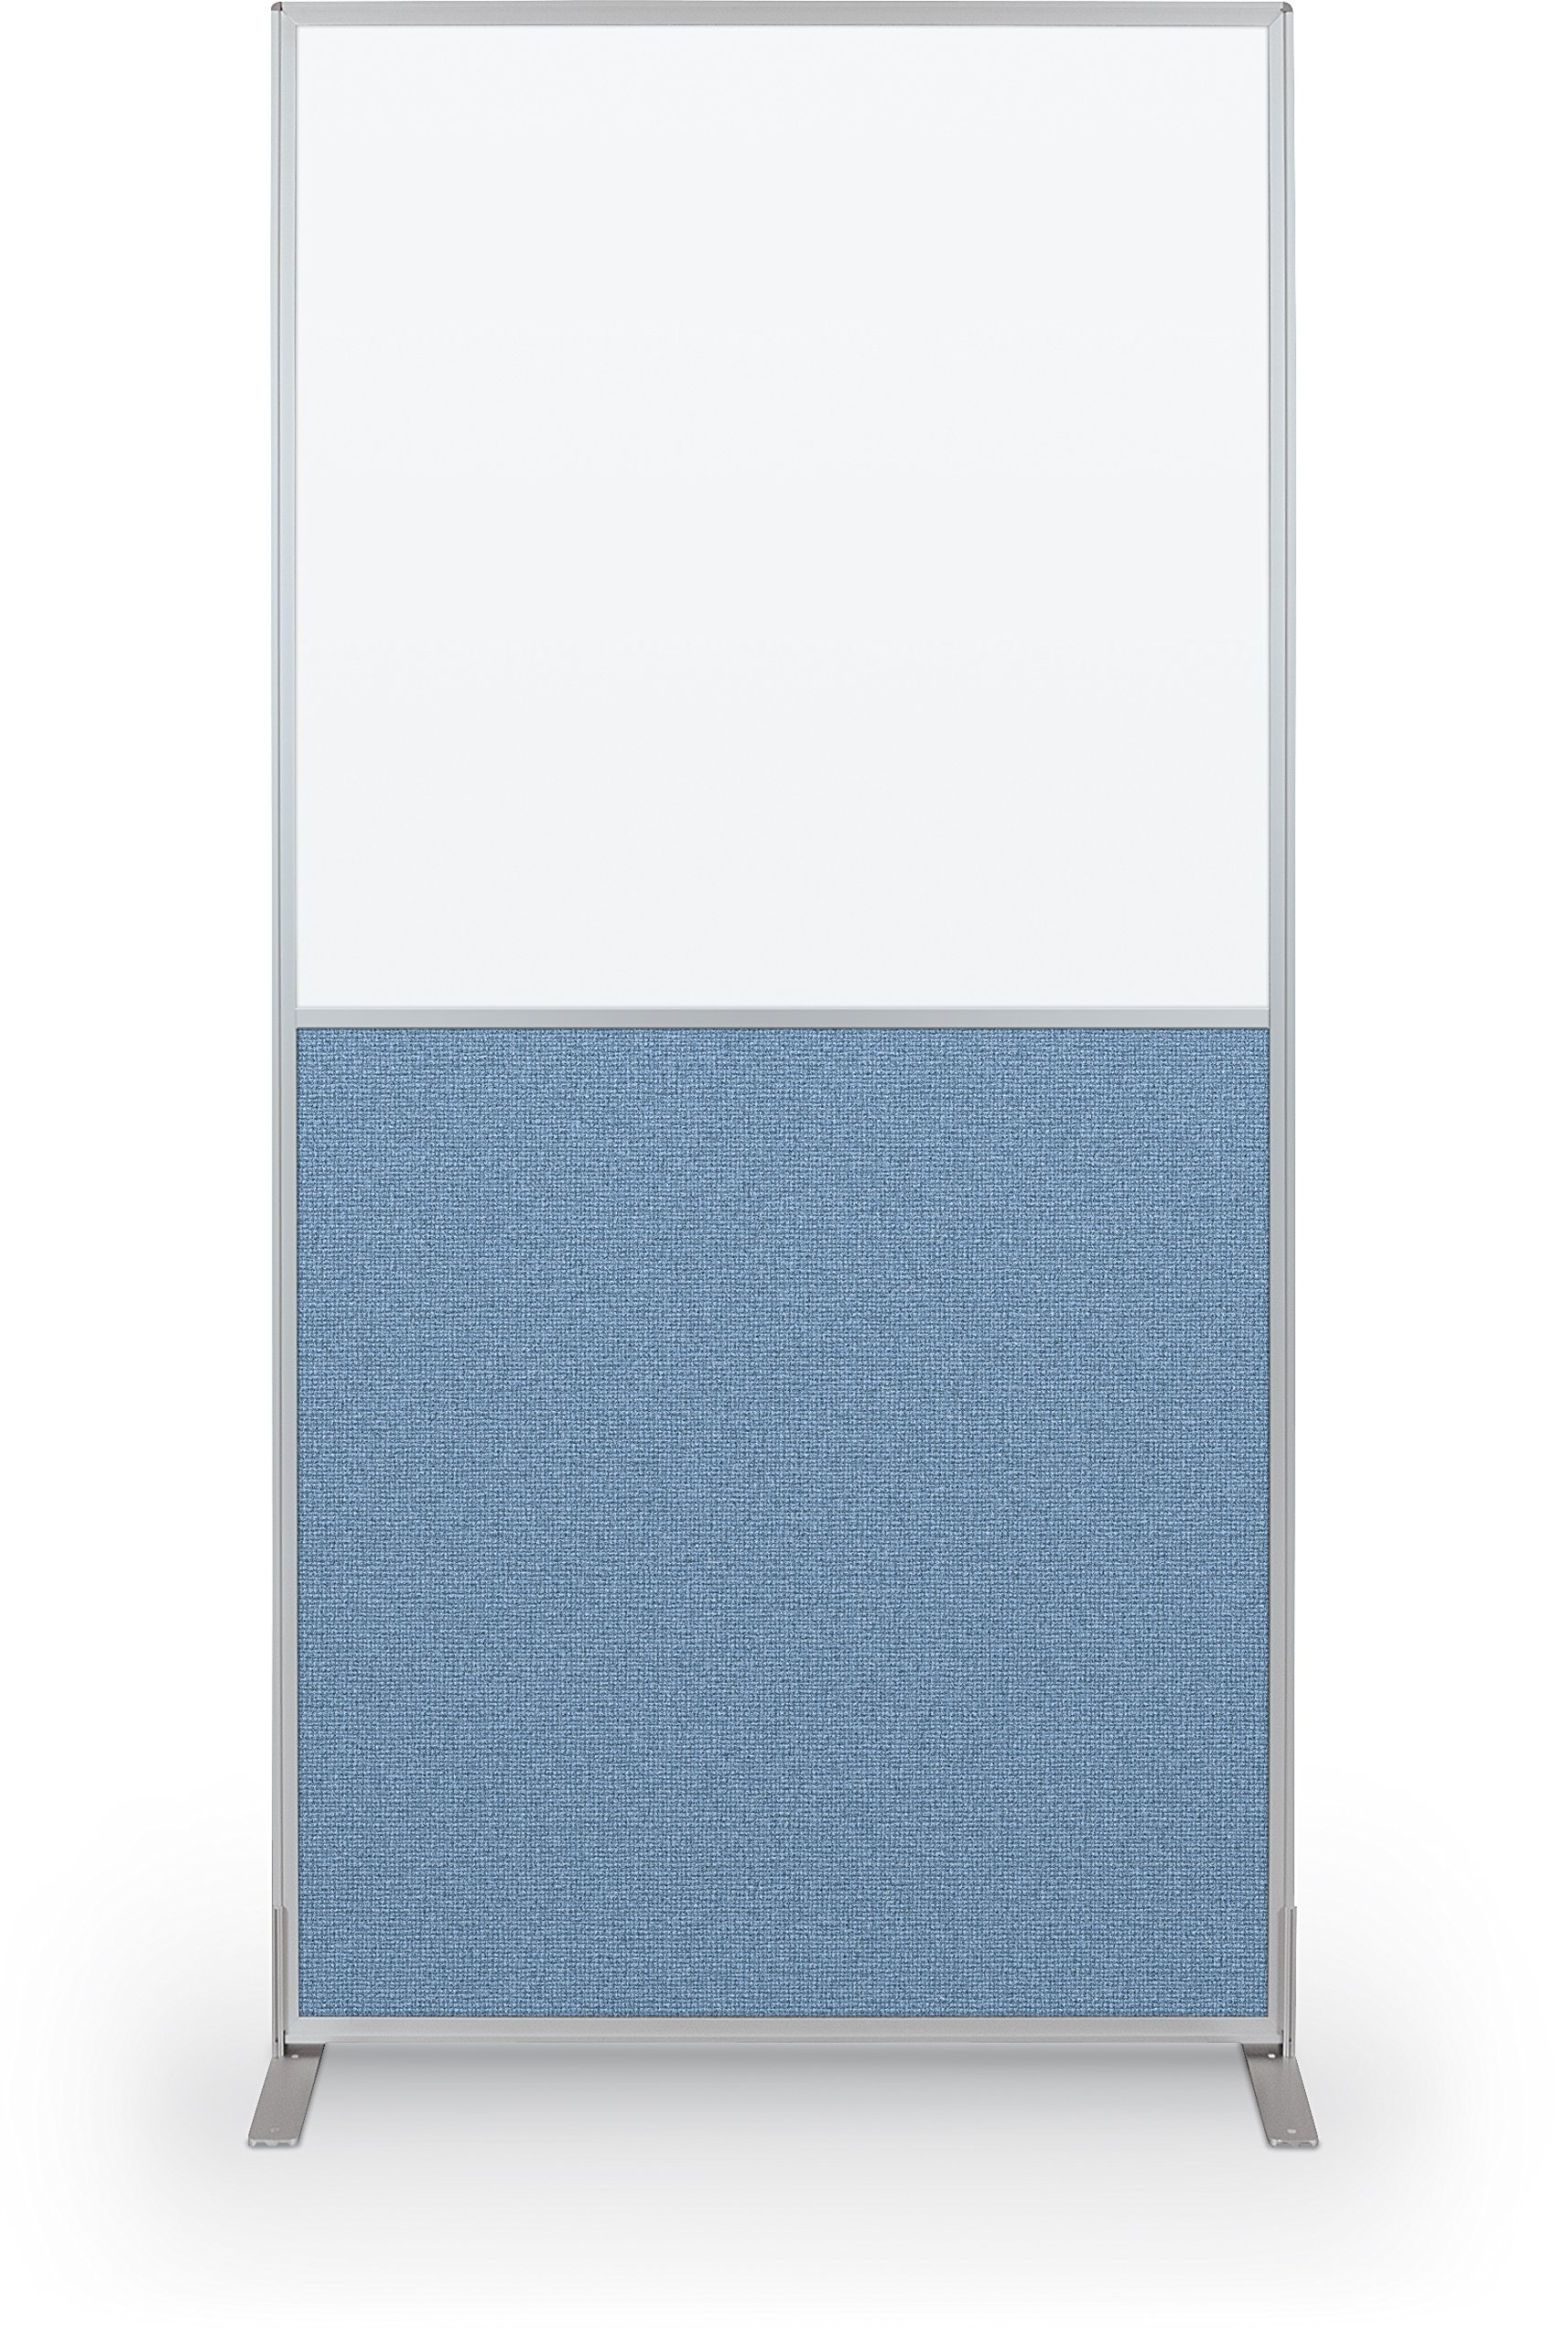 Best-Rite 72 x 36 Inch Standard Modular Divider Panel, Markerboard and Blue Fabric, (66223) by Best-Rite (Image #2)